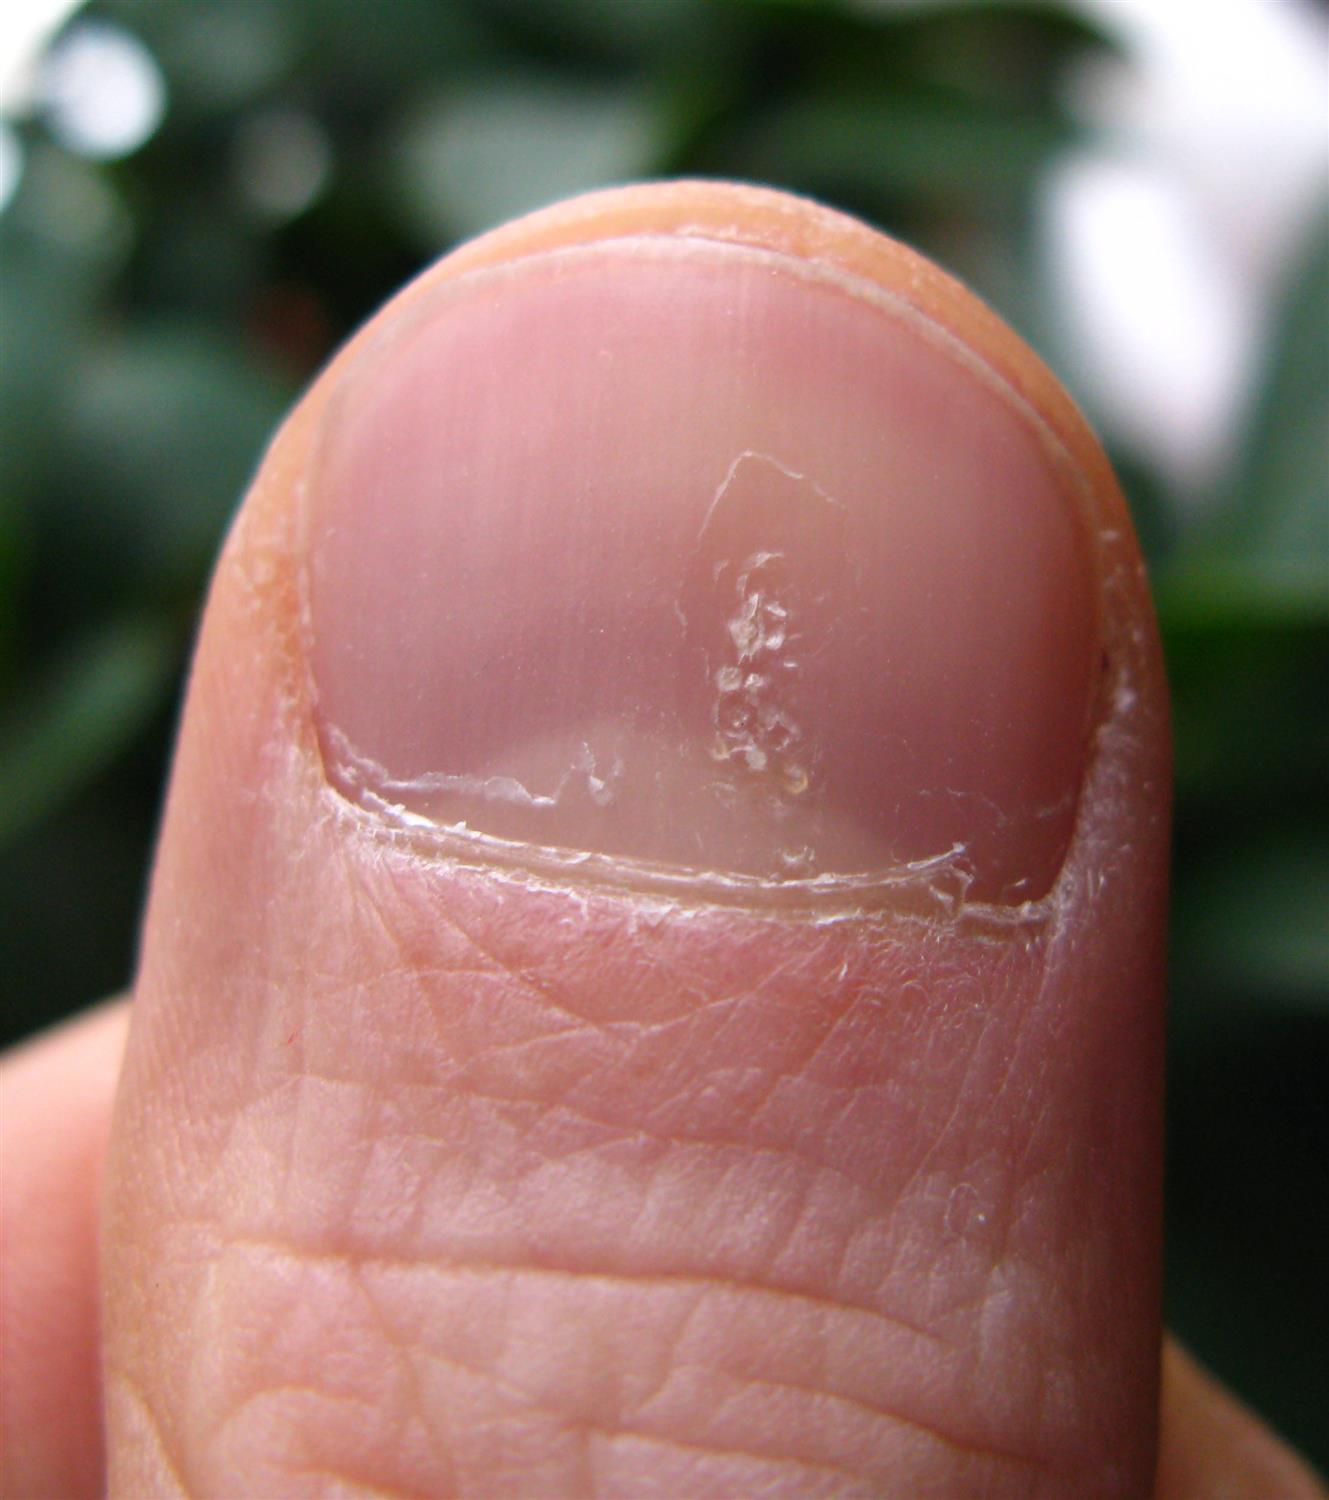 Nail Disorders - Dermatology - Medbullets Step 1